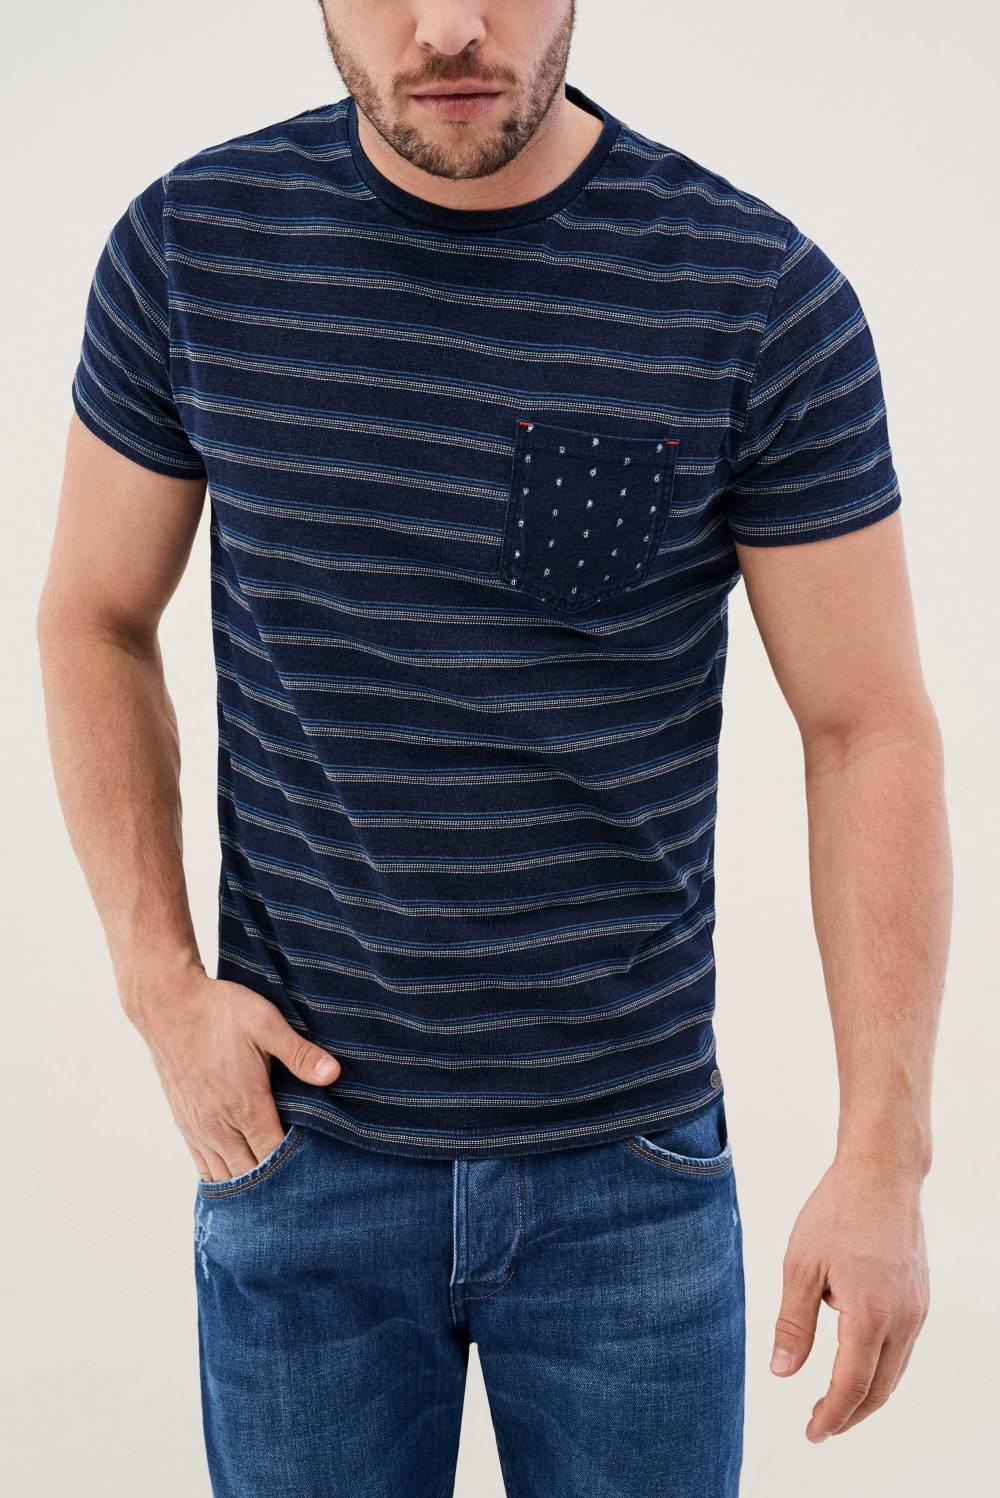 Striped shirt with microprint on the pocket - Salsa